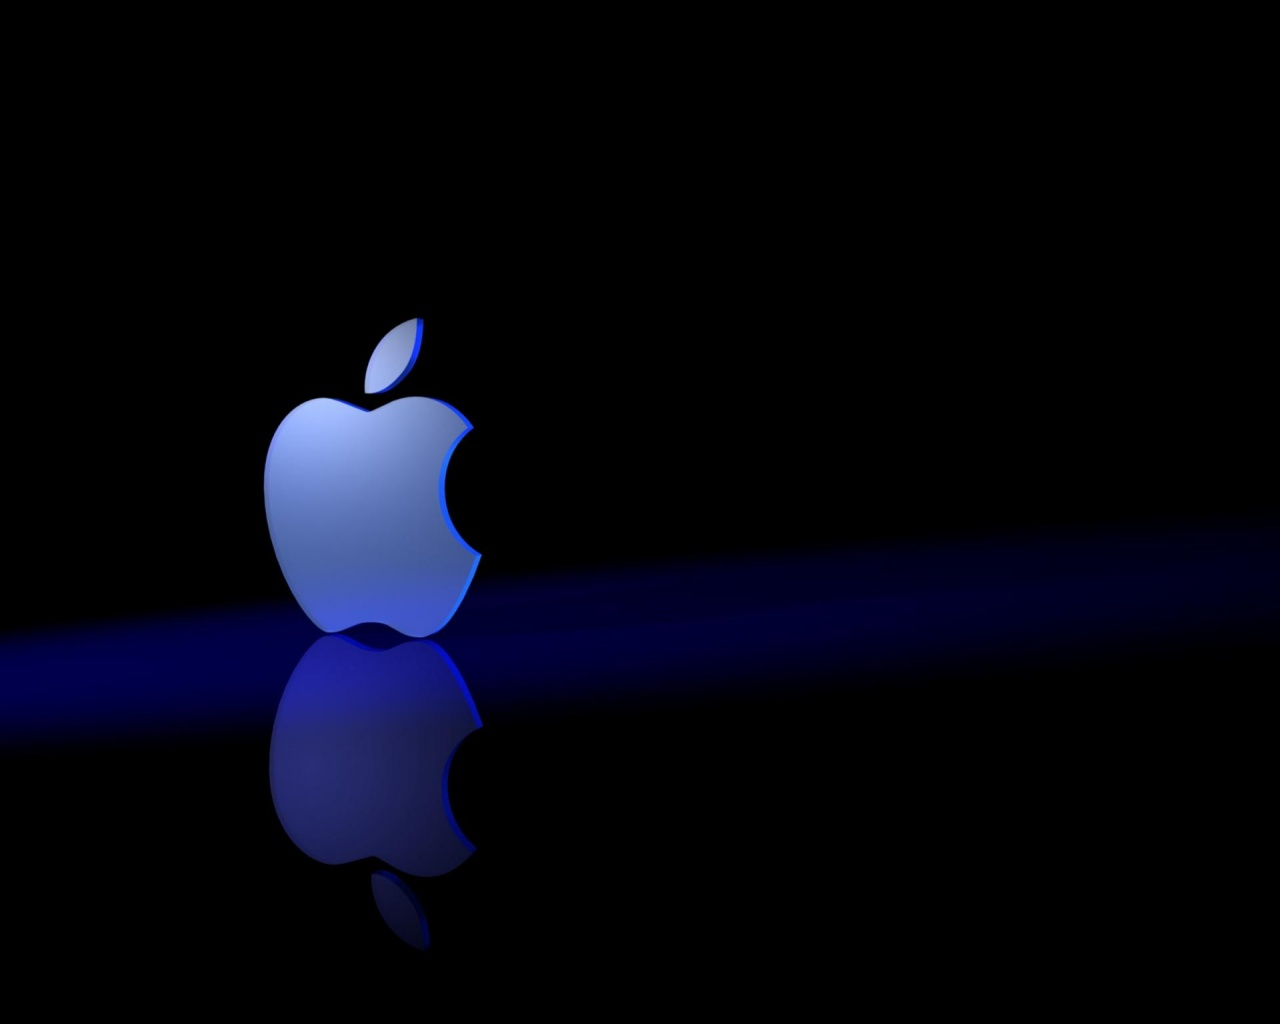 1280x1024 Apple 3Dark desktop PC and Mac wallpaper